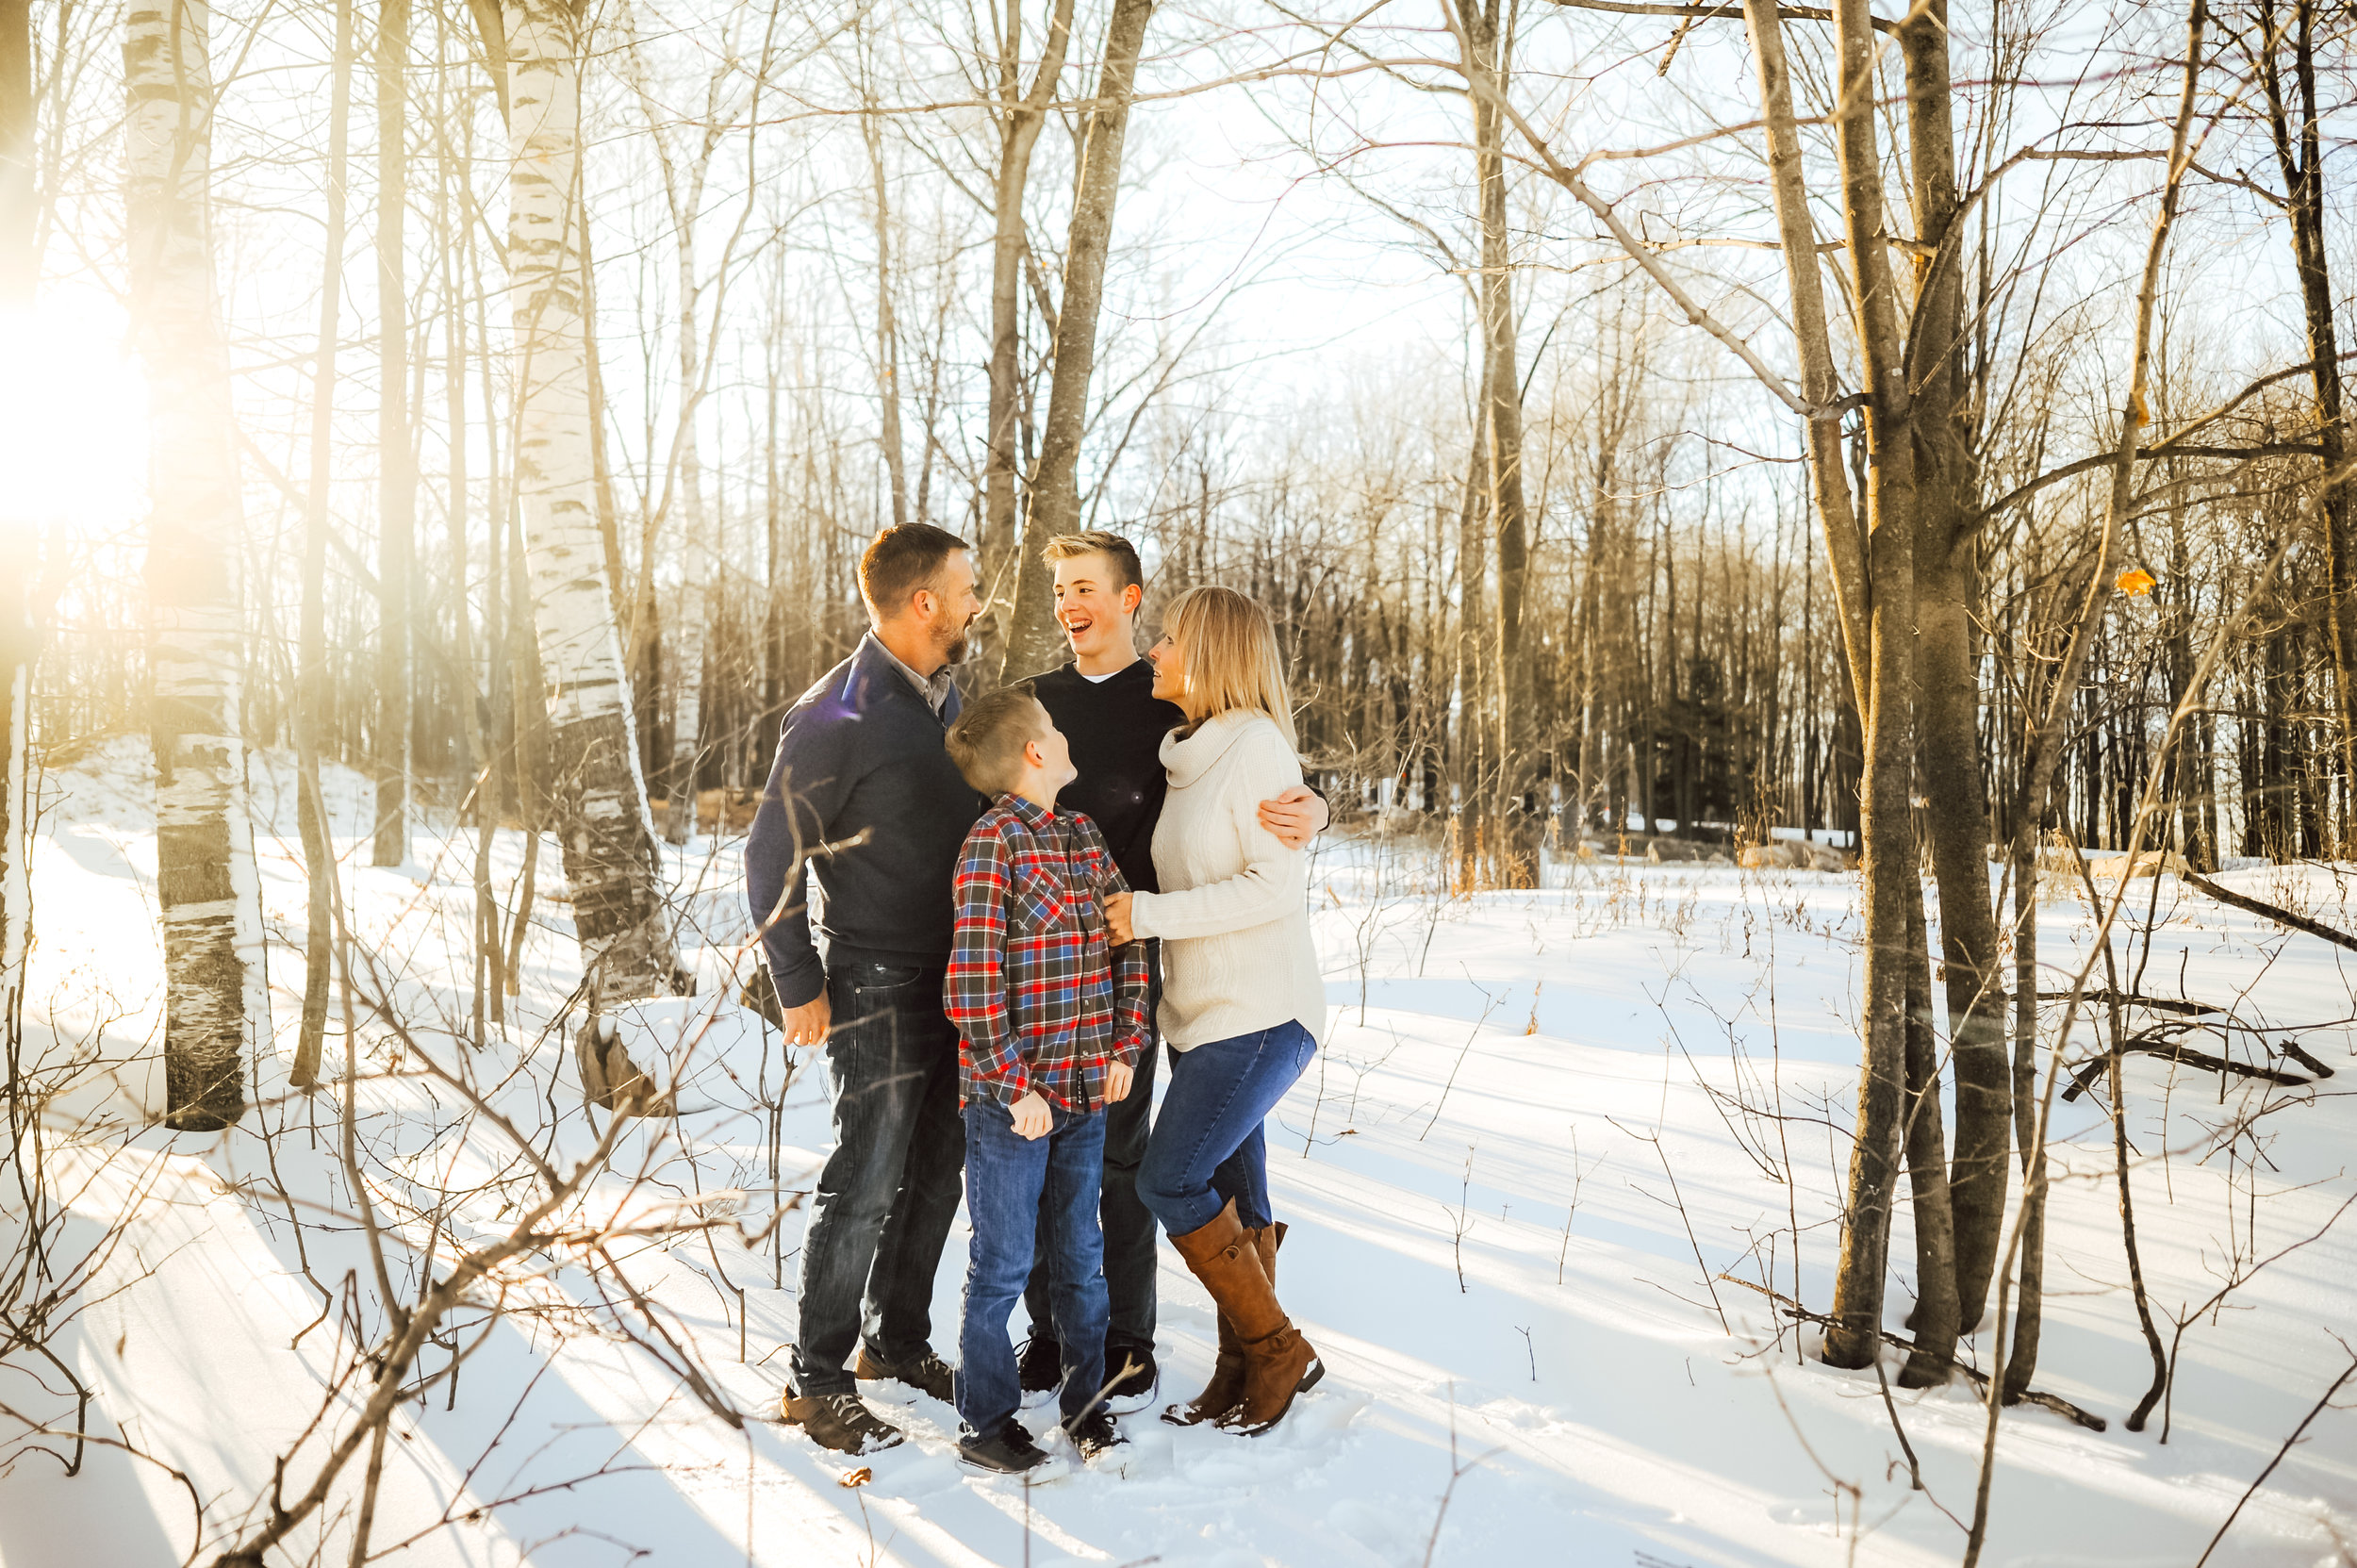 Kelly Jacobi Photography | Wausau Photographer Wausau Family Photographer Wausau Lifestyle Photographer Central Wisconsin Photographer